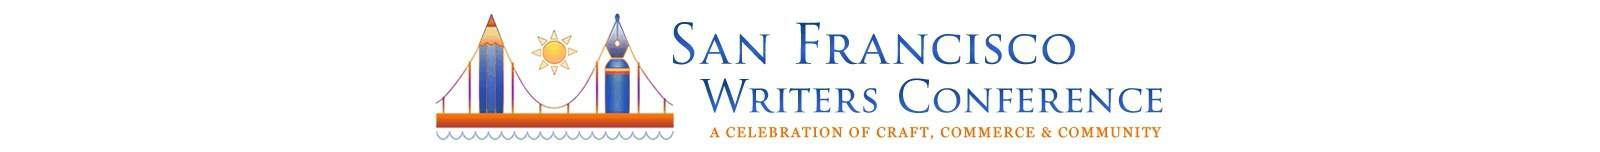 San Franciso Writers Conference Banne